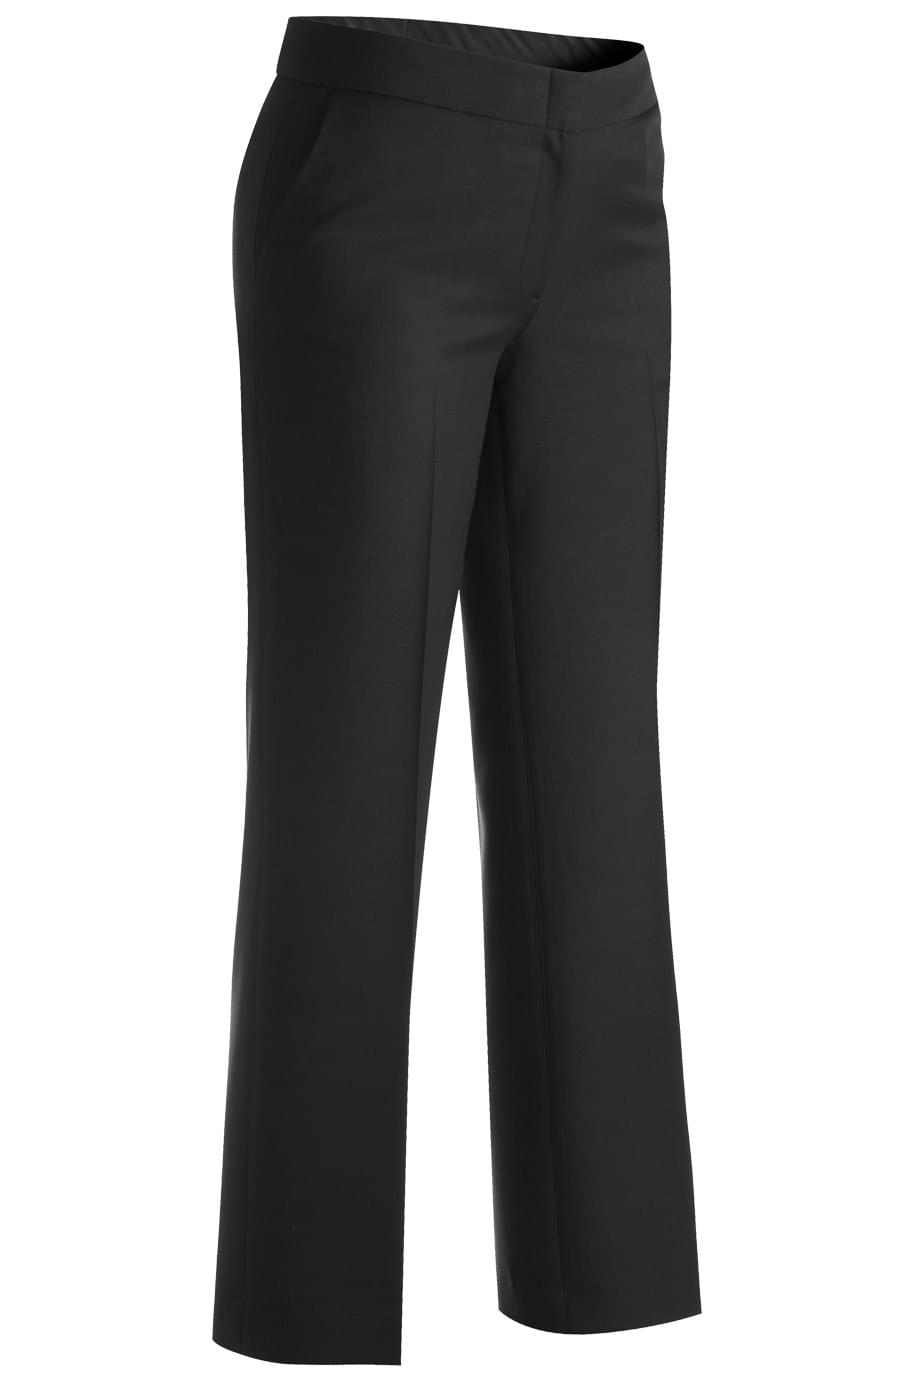 Edwards Garments Women's Washable Lightweight Suit Pant 8525 at Sears.com